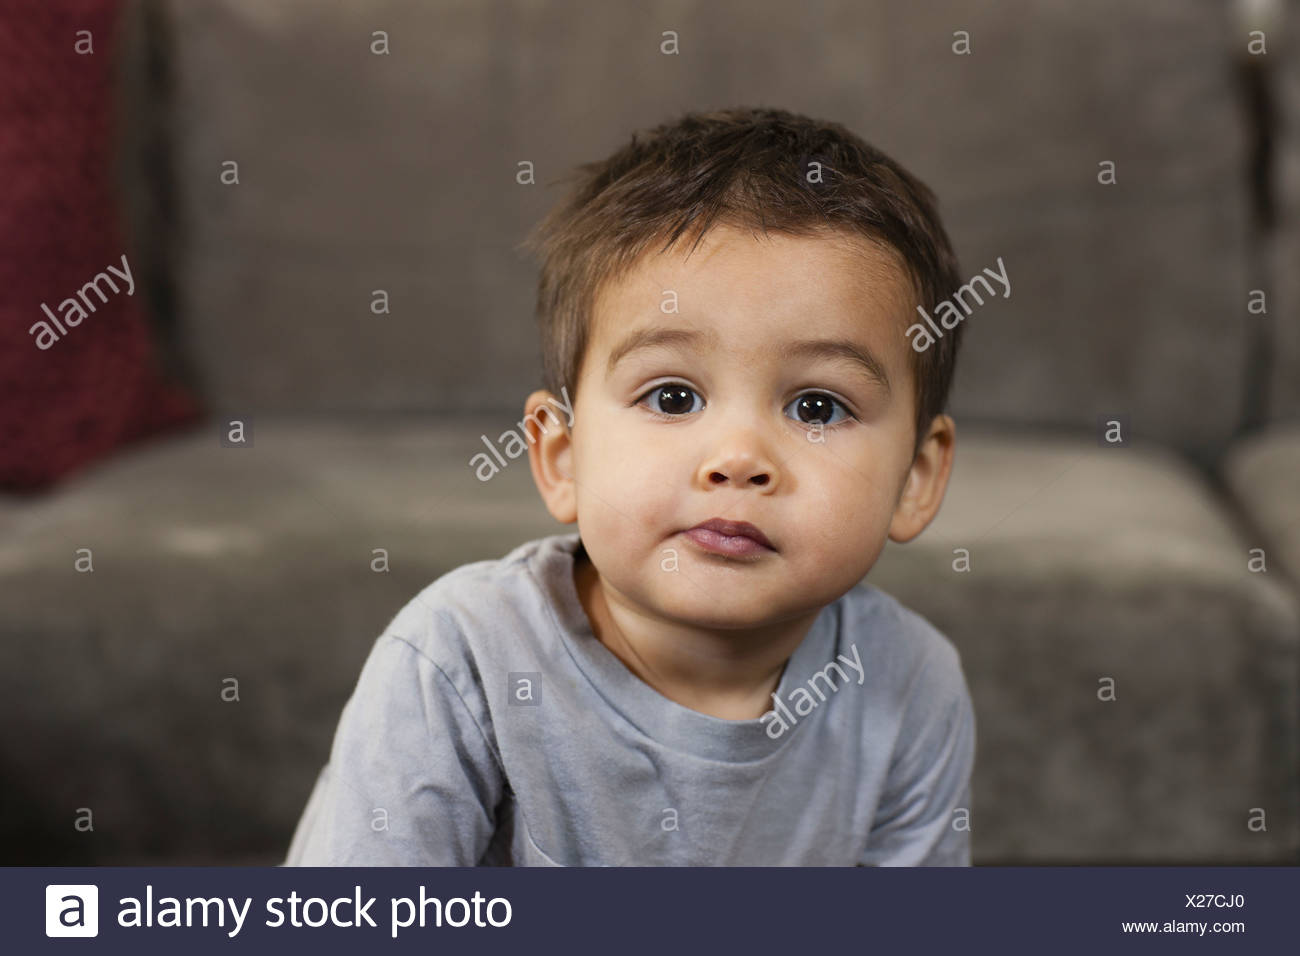 A young boy sitting looking at the camera with a serious expression Pennsylvania USA - Stock Image